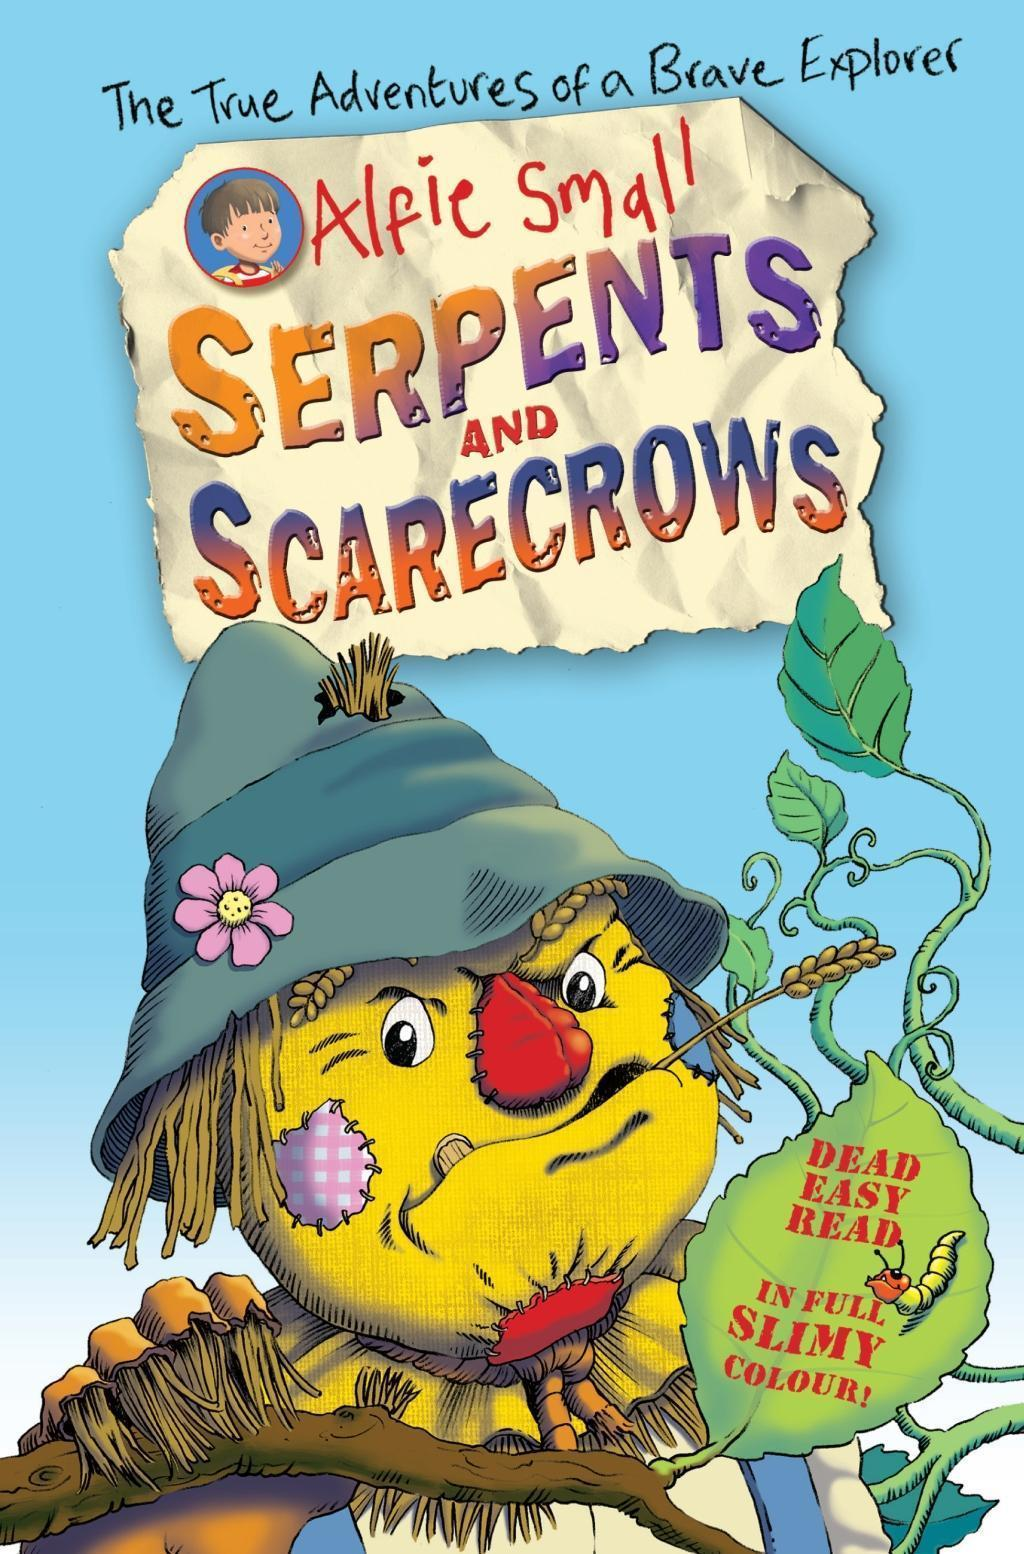 Alfie Small: Serpents and Scarecrows